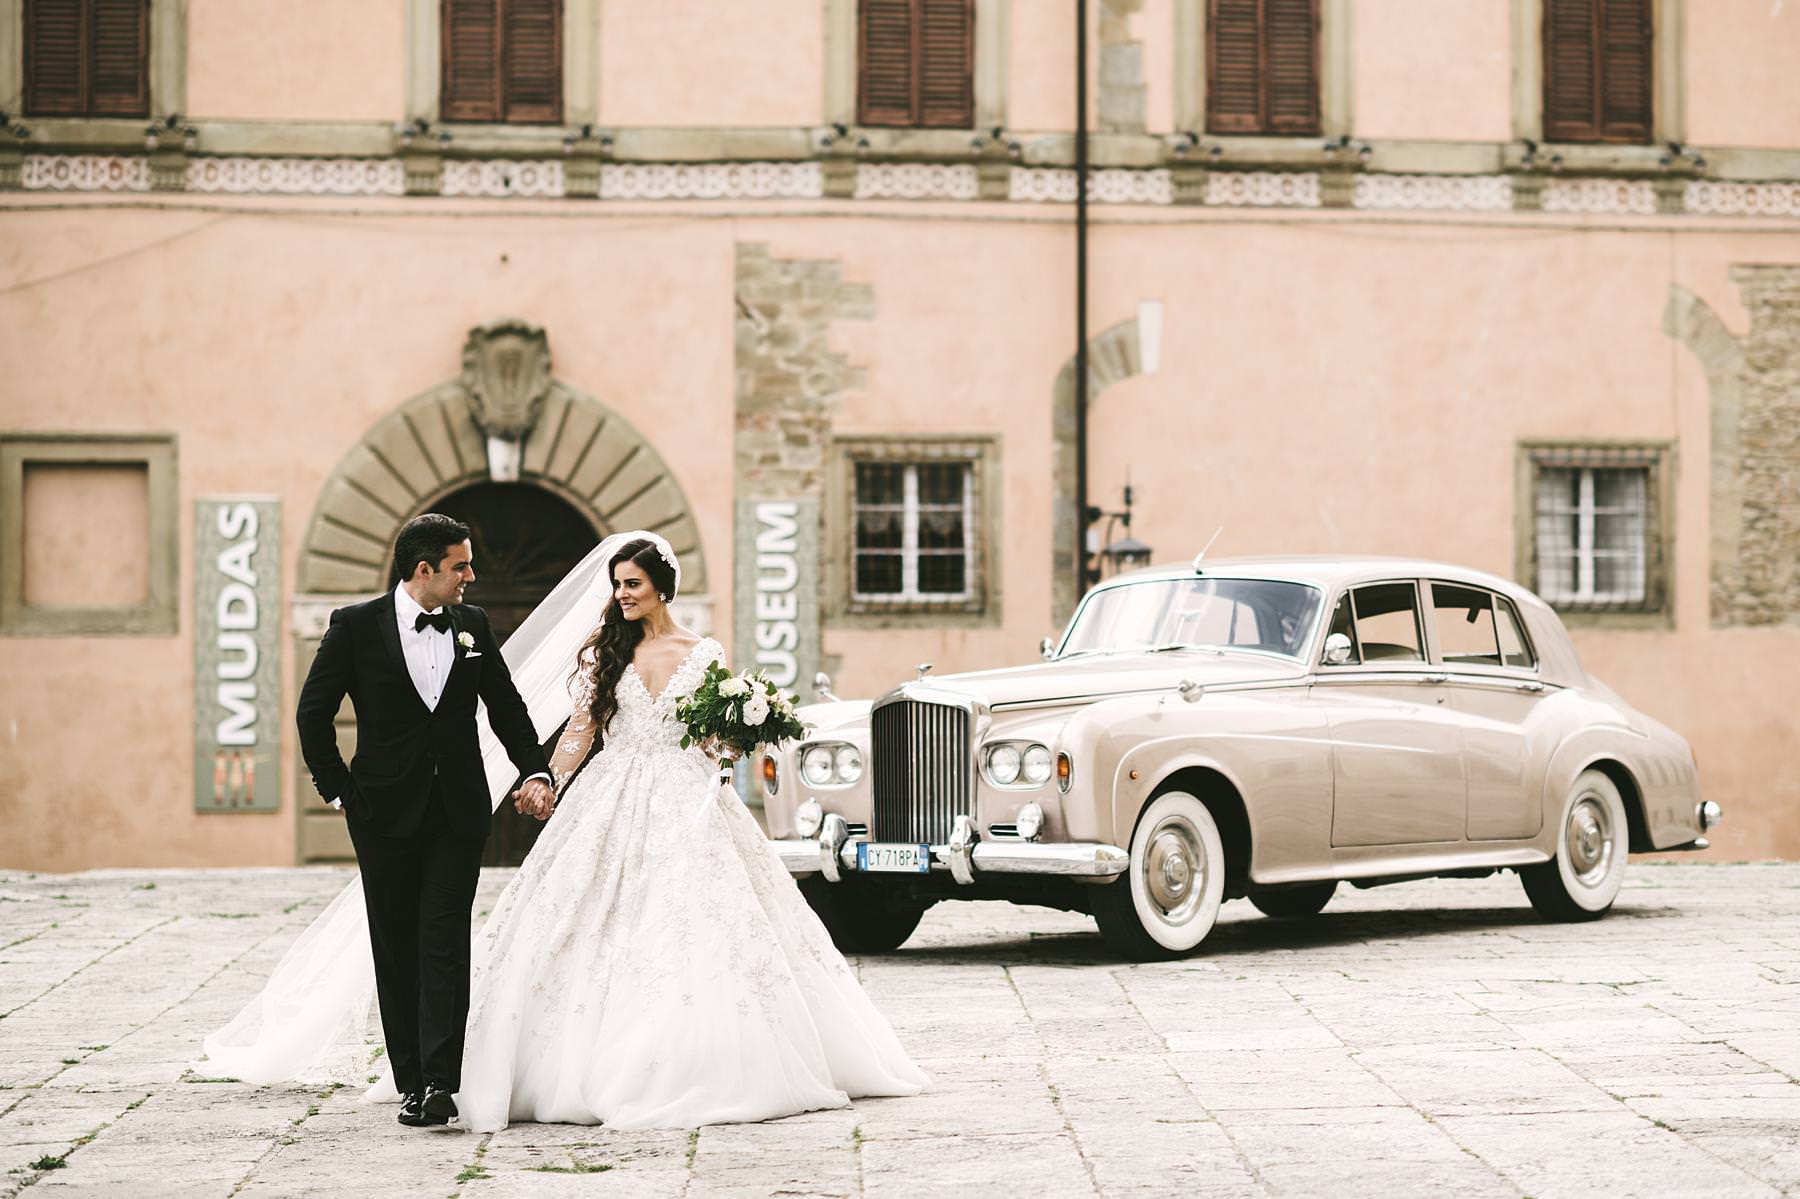 Bride and groom wedding photo in the city of Arezzo near the Cathedral. Elegant destination wedding in Tuscany with reception at Valenzano Castle